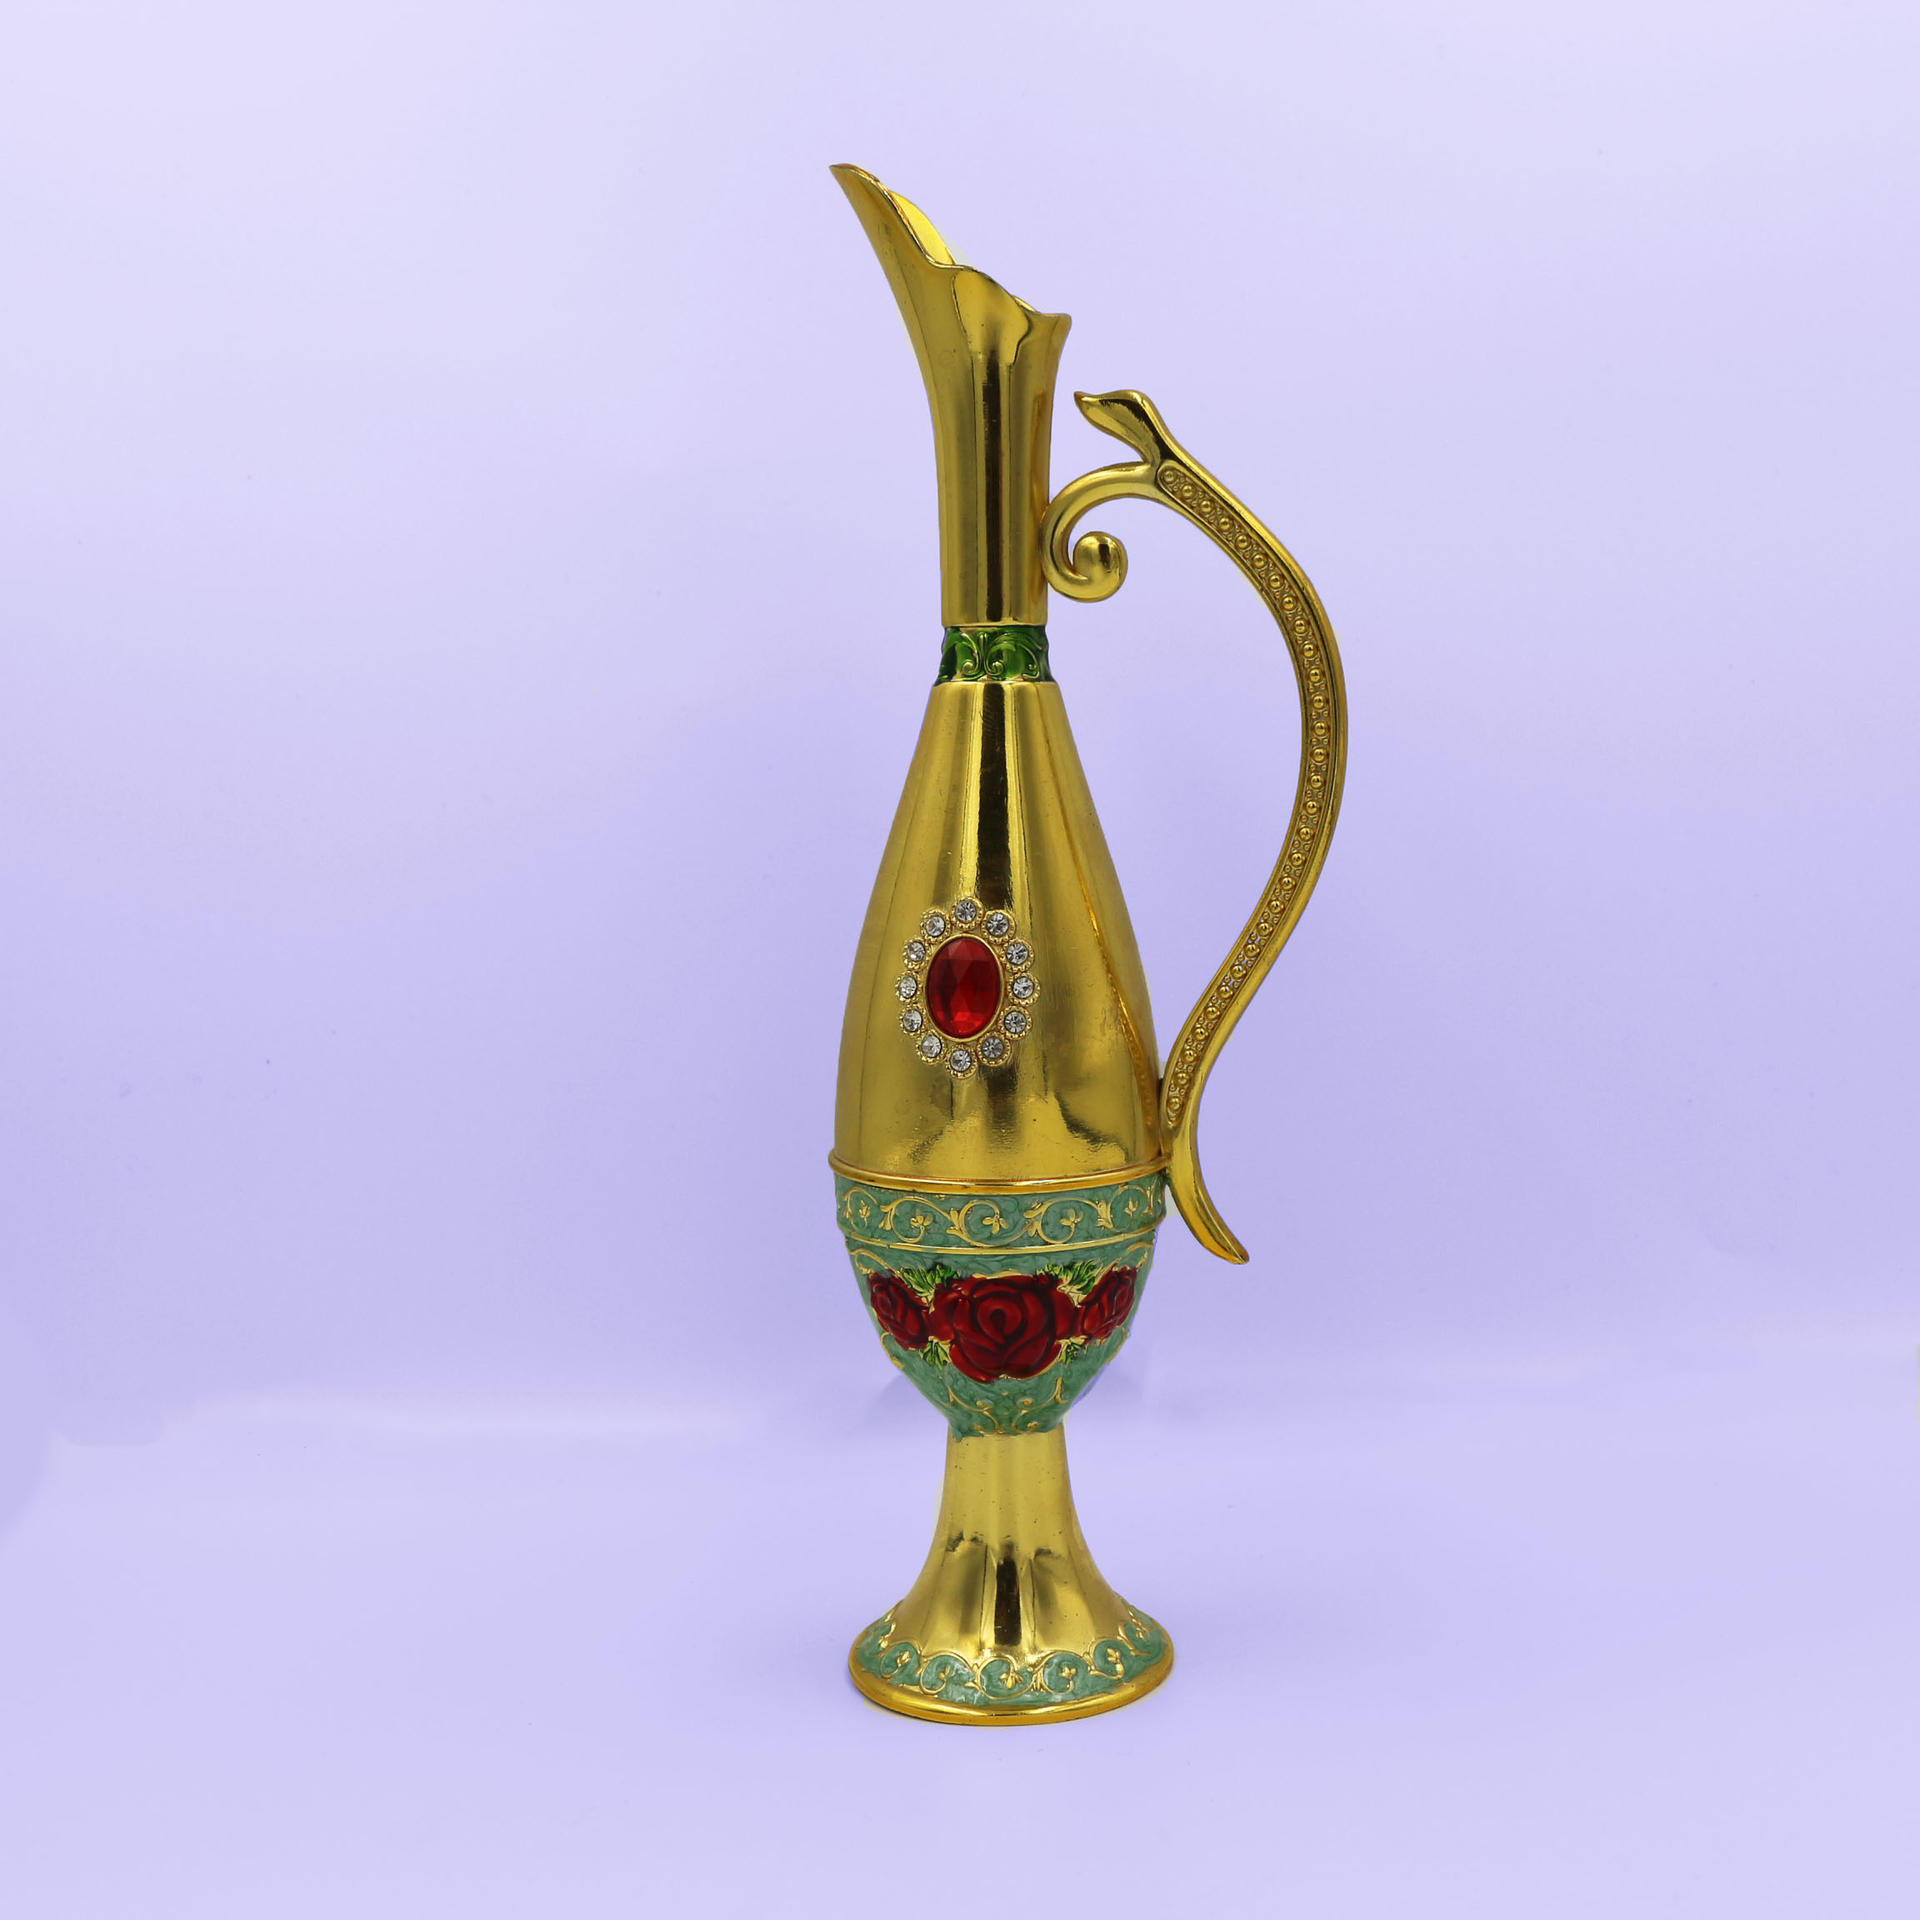 Vintage golden vase decoration